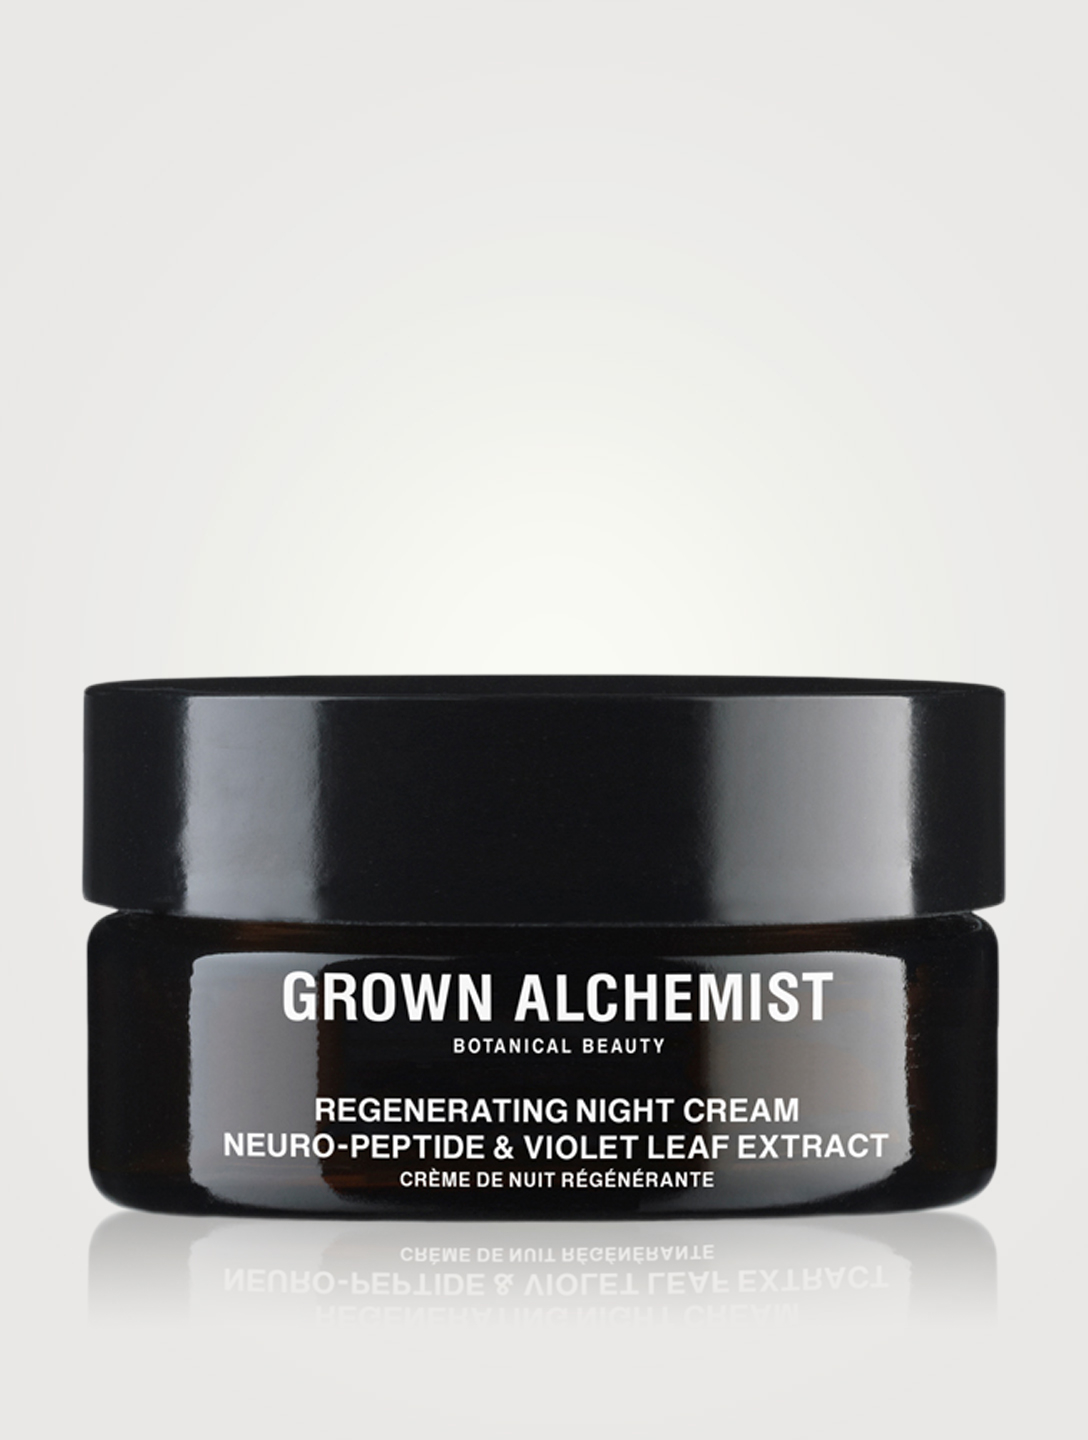 GROWN ALCHEMIST Regenerating Night Cream: Neuro-Peptide & Violet Leaf Extract Beauty